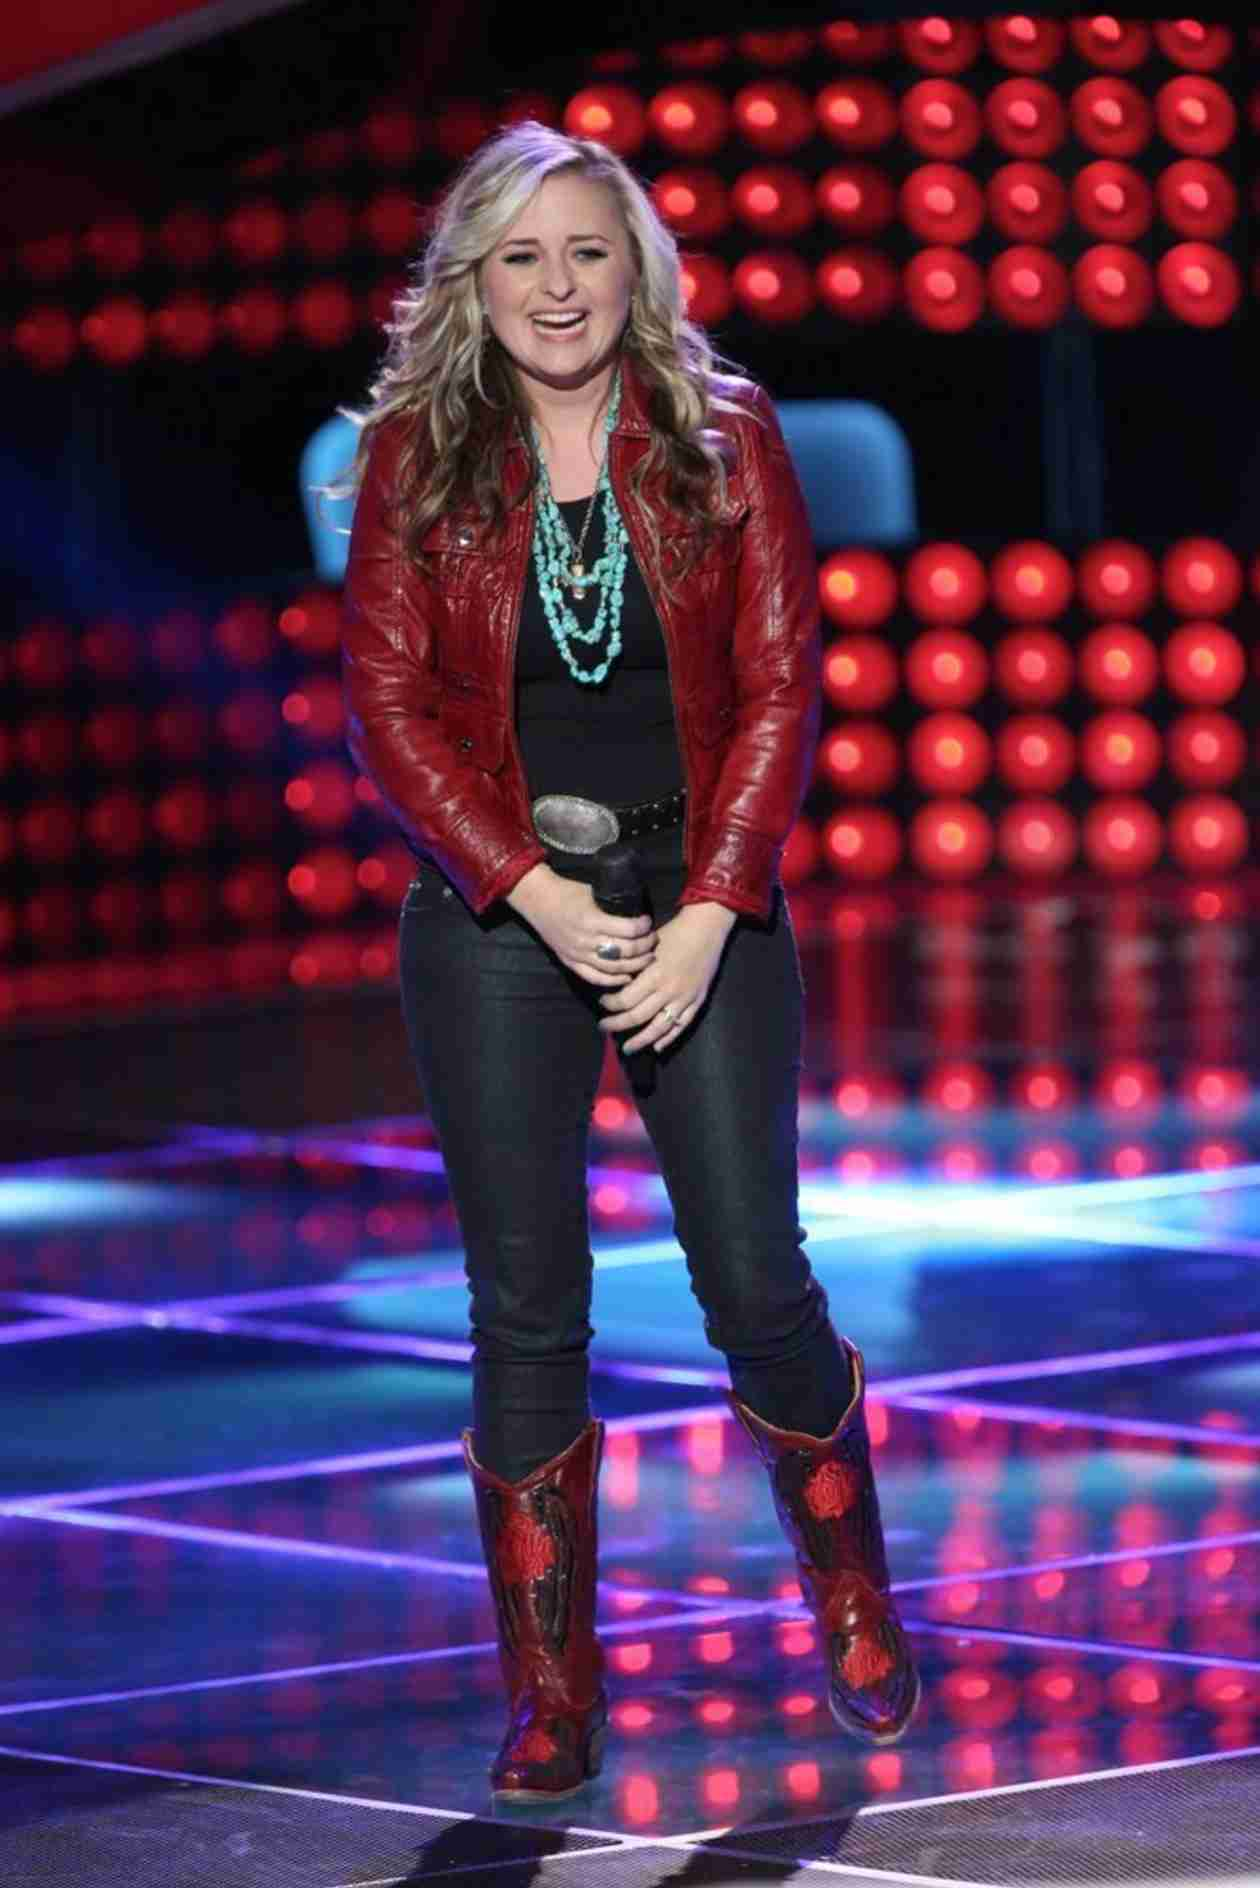 The Voice 2014: Watch All the Performances From Season 6 Blind Auditions, Feb. 25, 2014 (VIDEOS)